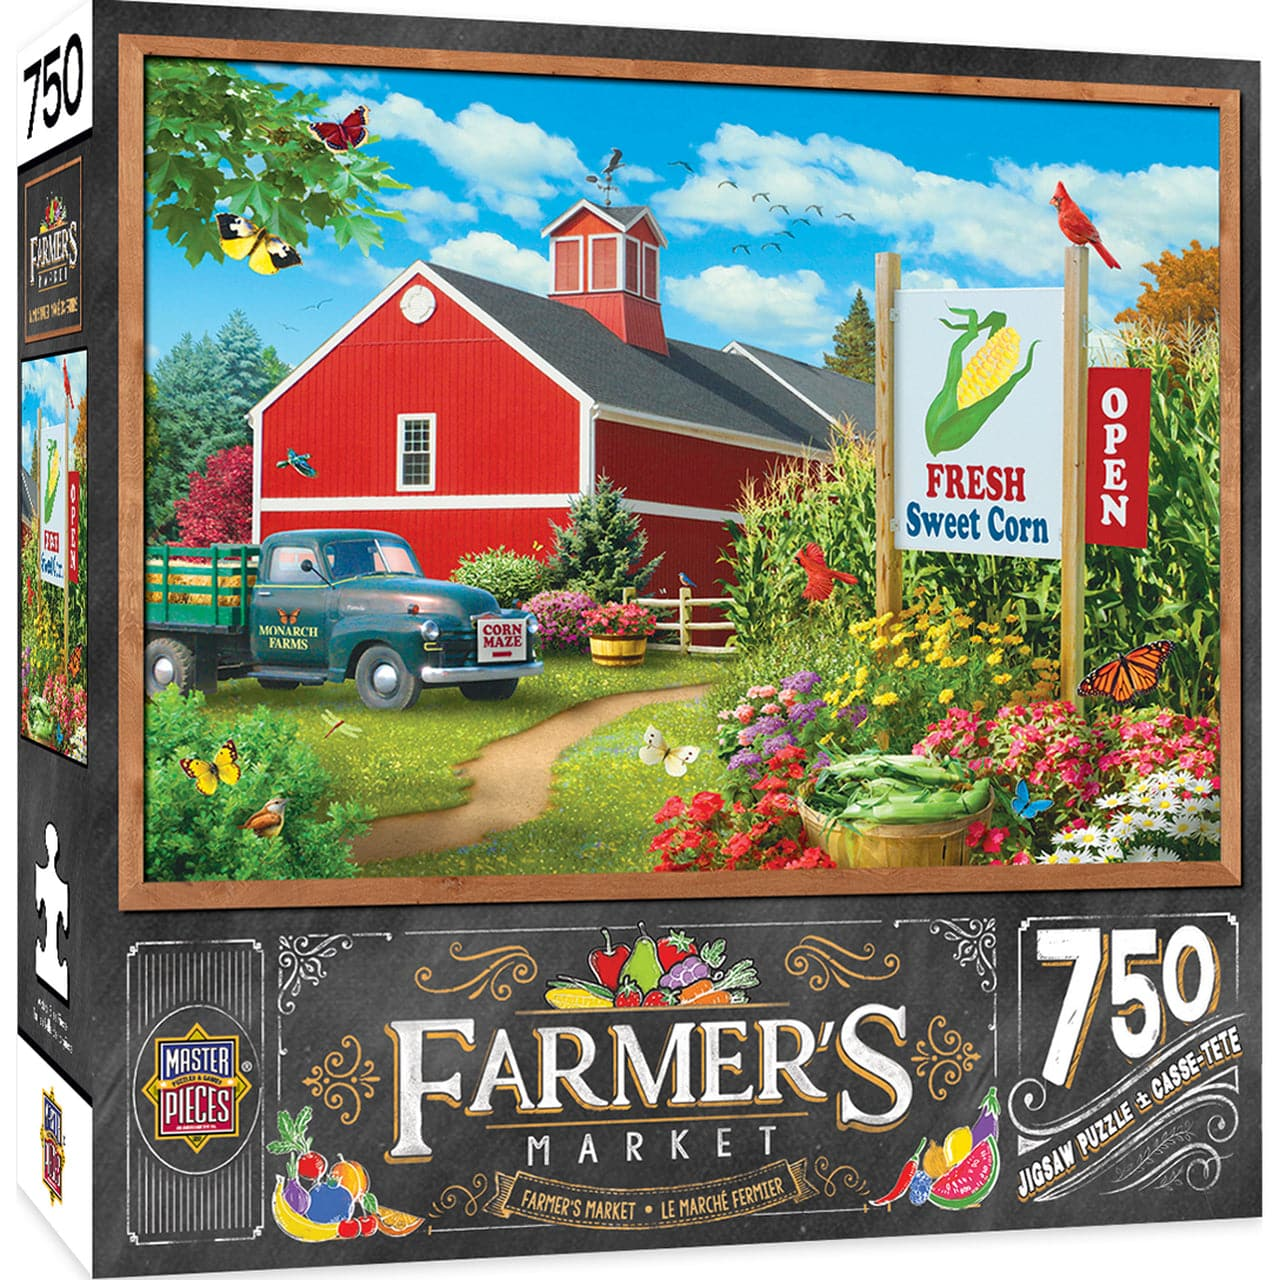 Farmer's Market - Country Heaven - 750 Piece Puzzle